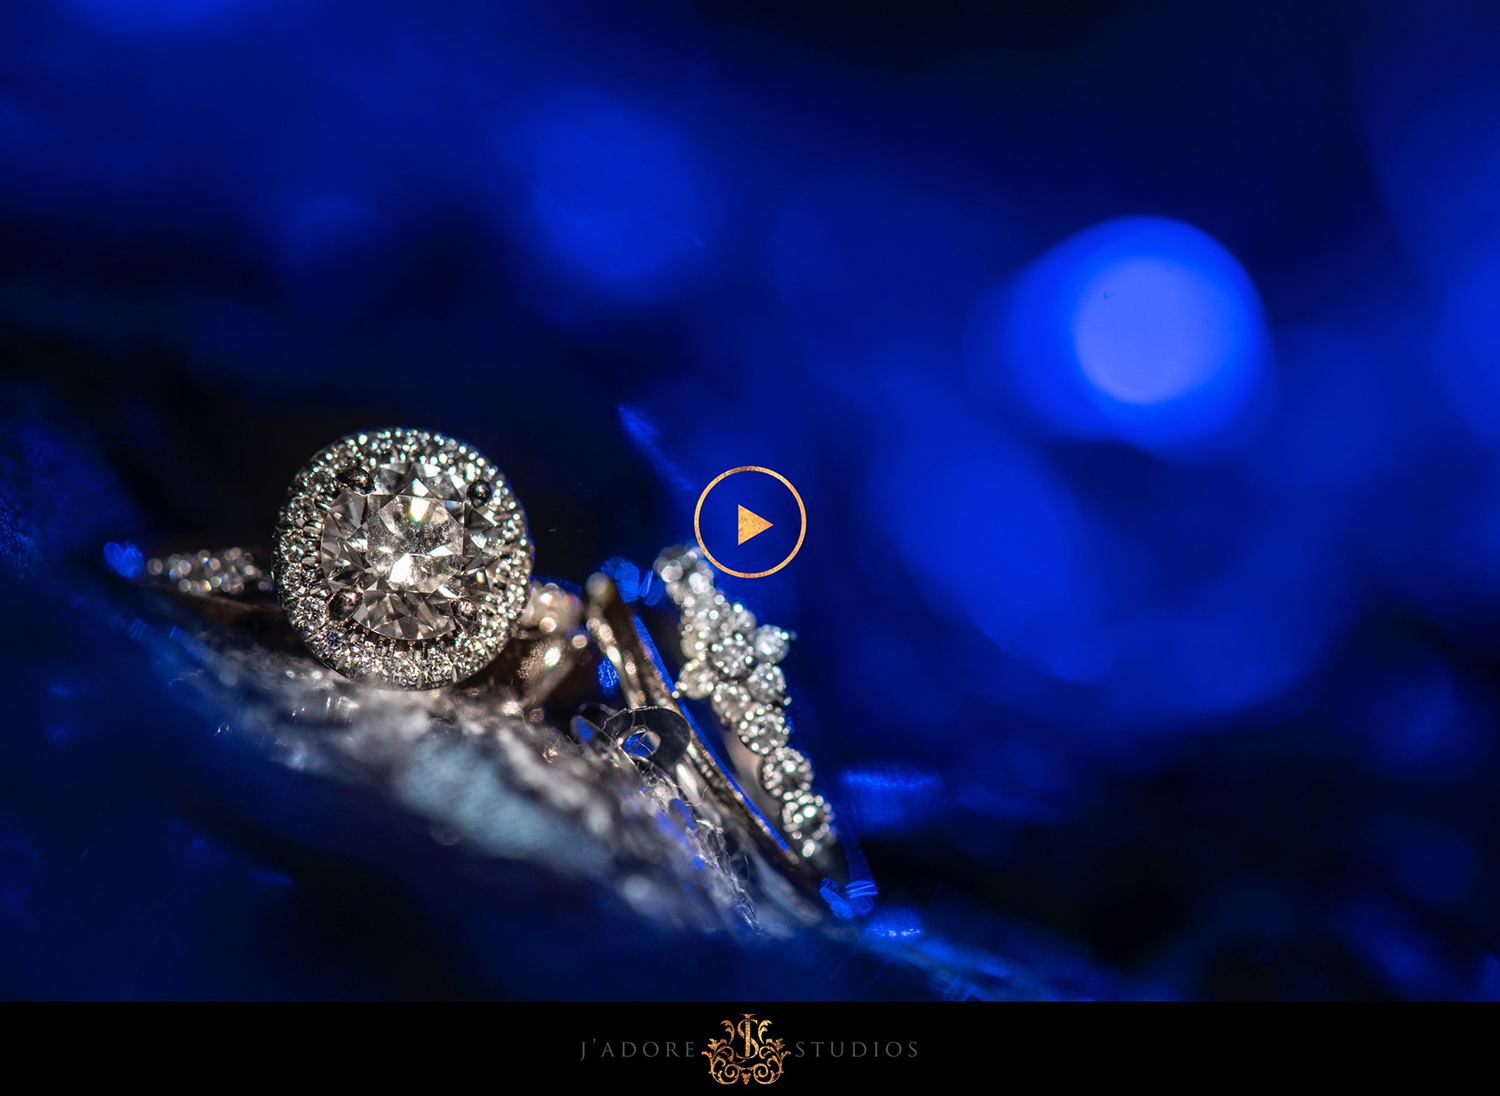 Blue detail ring shot for wedding photography. Bride and groom rings